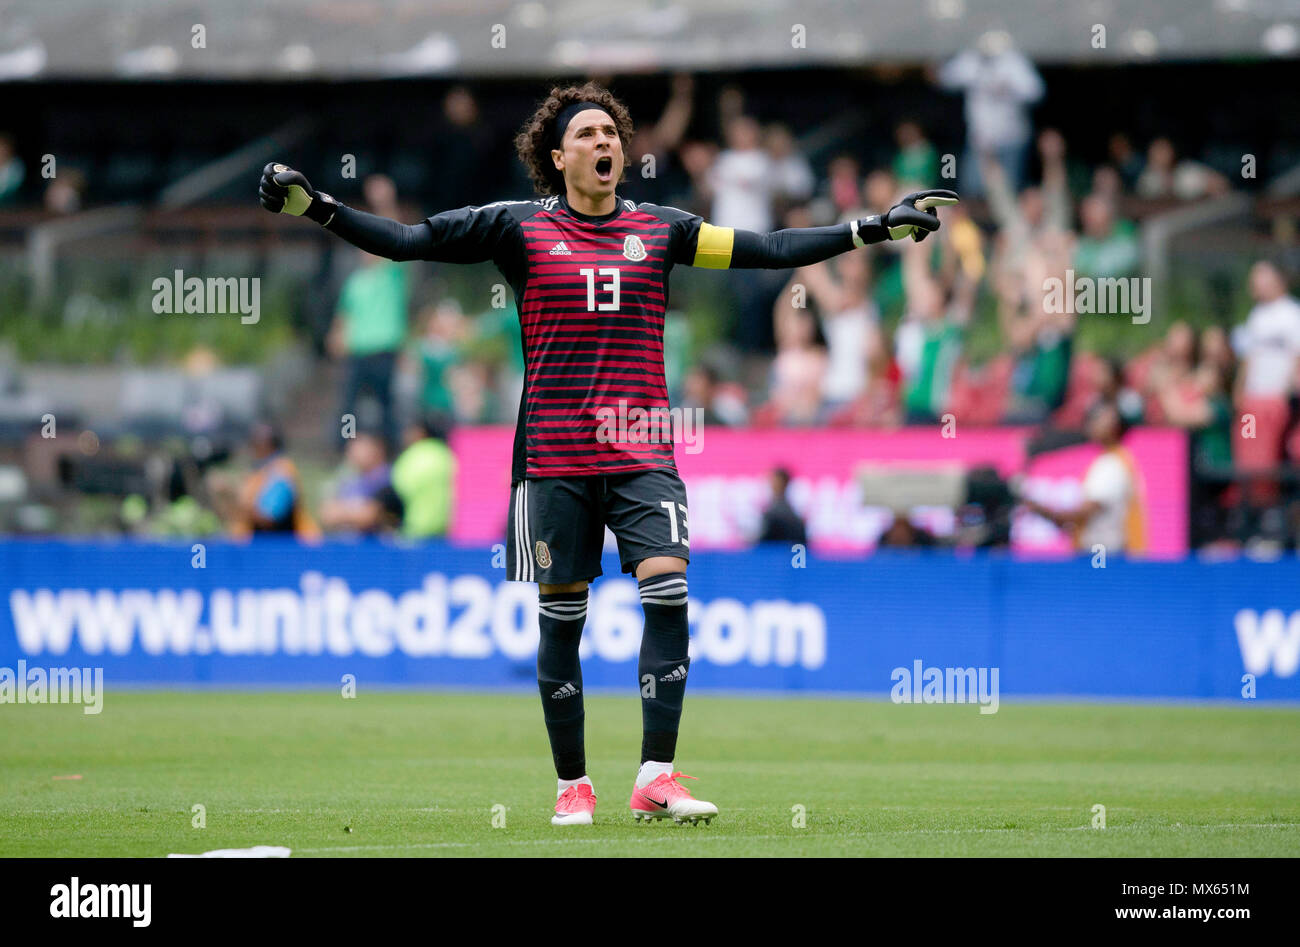 0237a0ad31c Goalkeeper Guillermo Ochoa of Mexico celebrates a goal during the  international friendly match against Scotland before the 2018 FIFA World Cup  ...